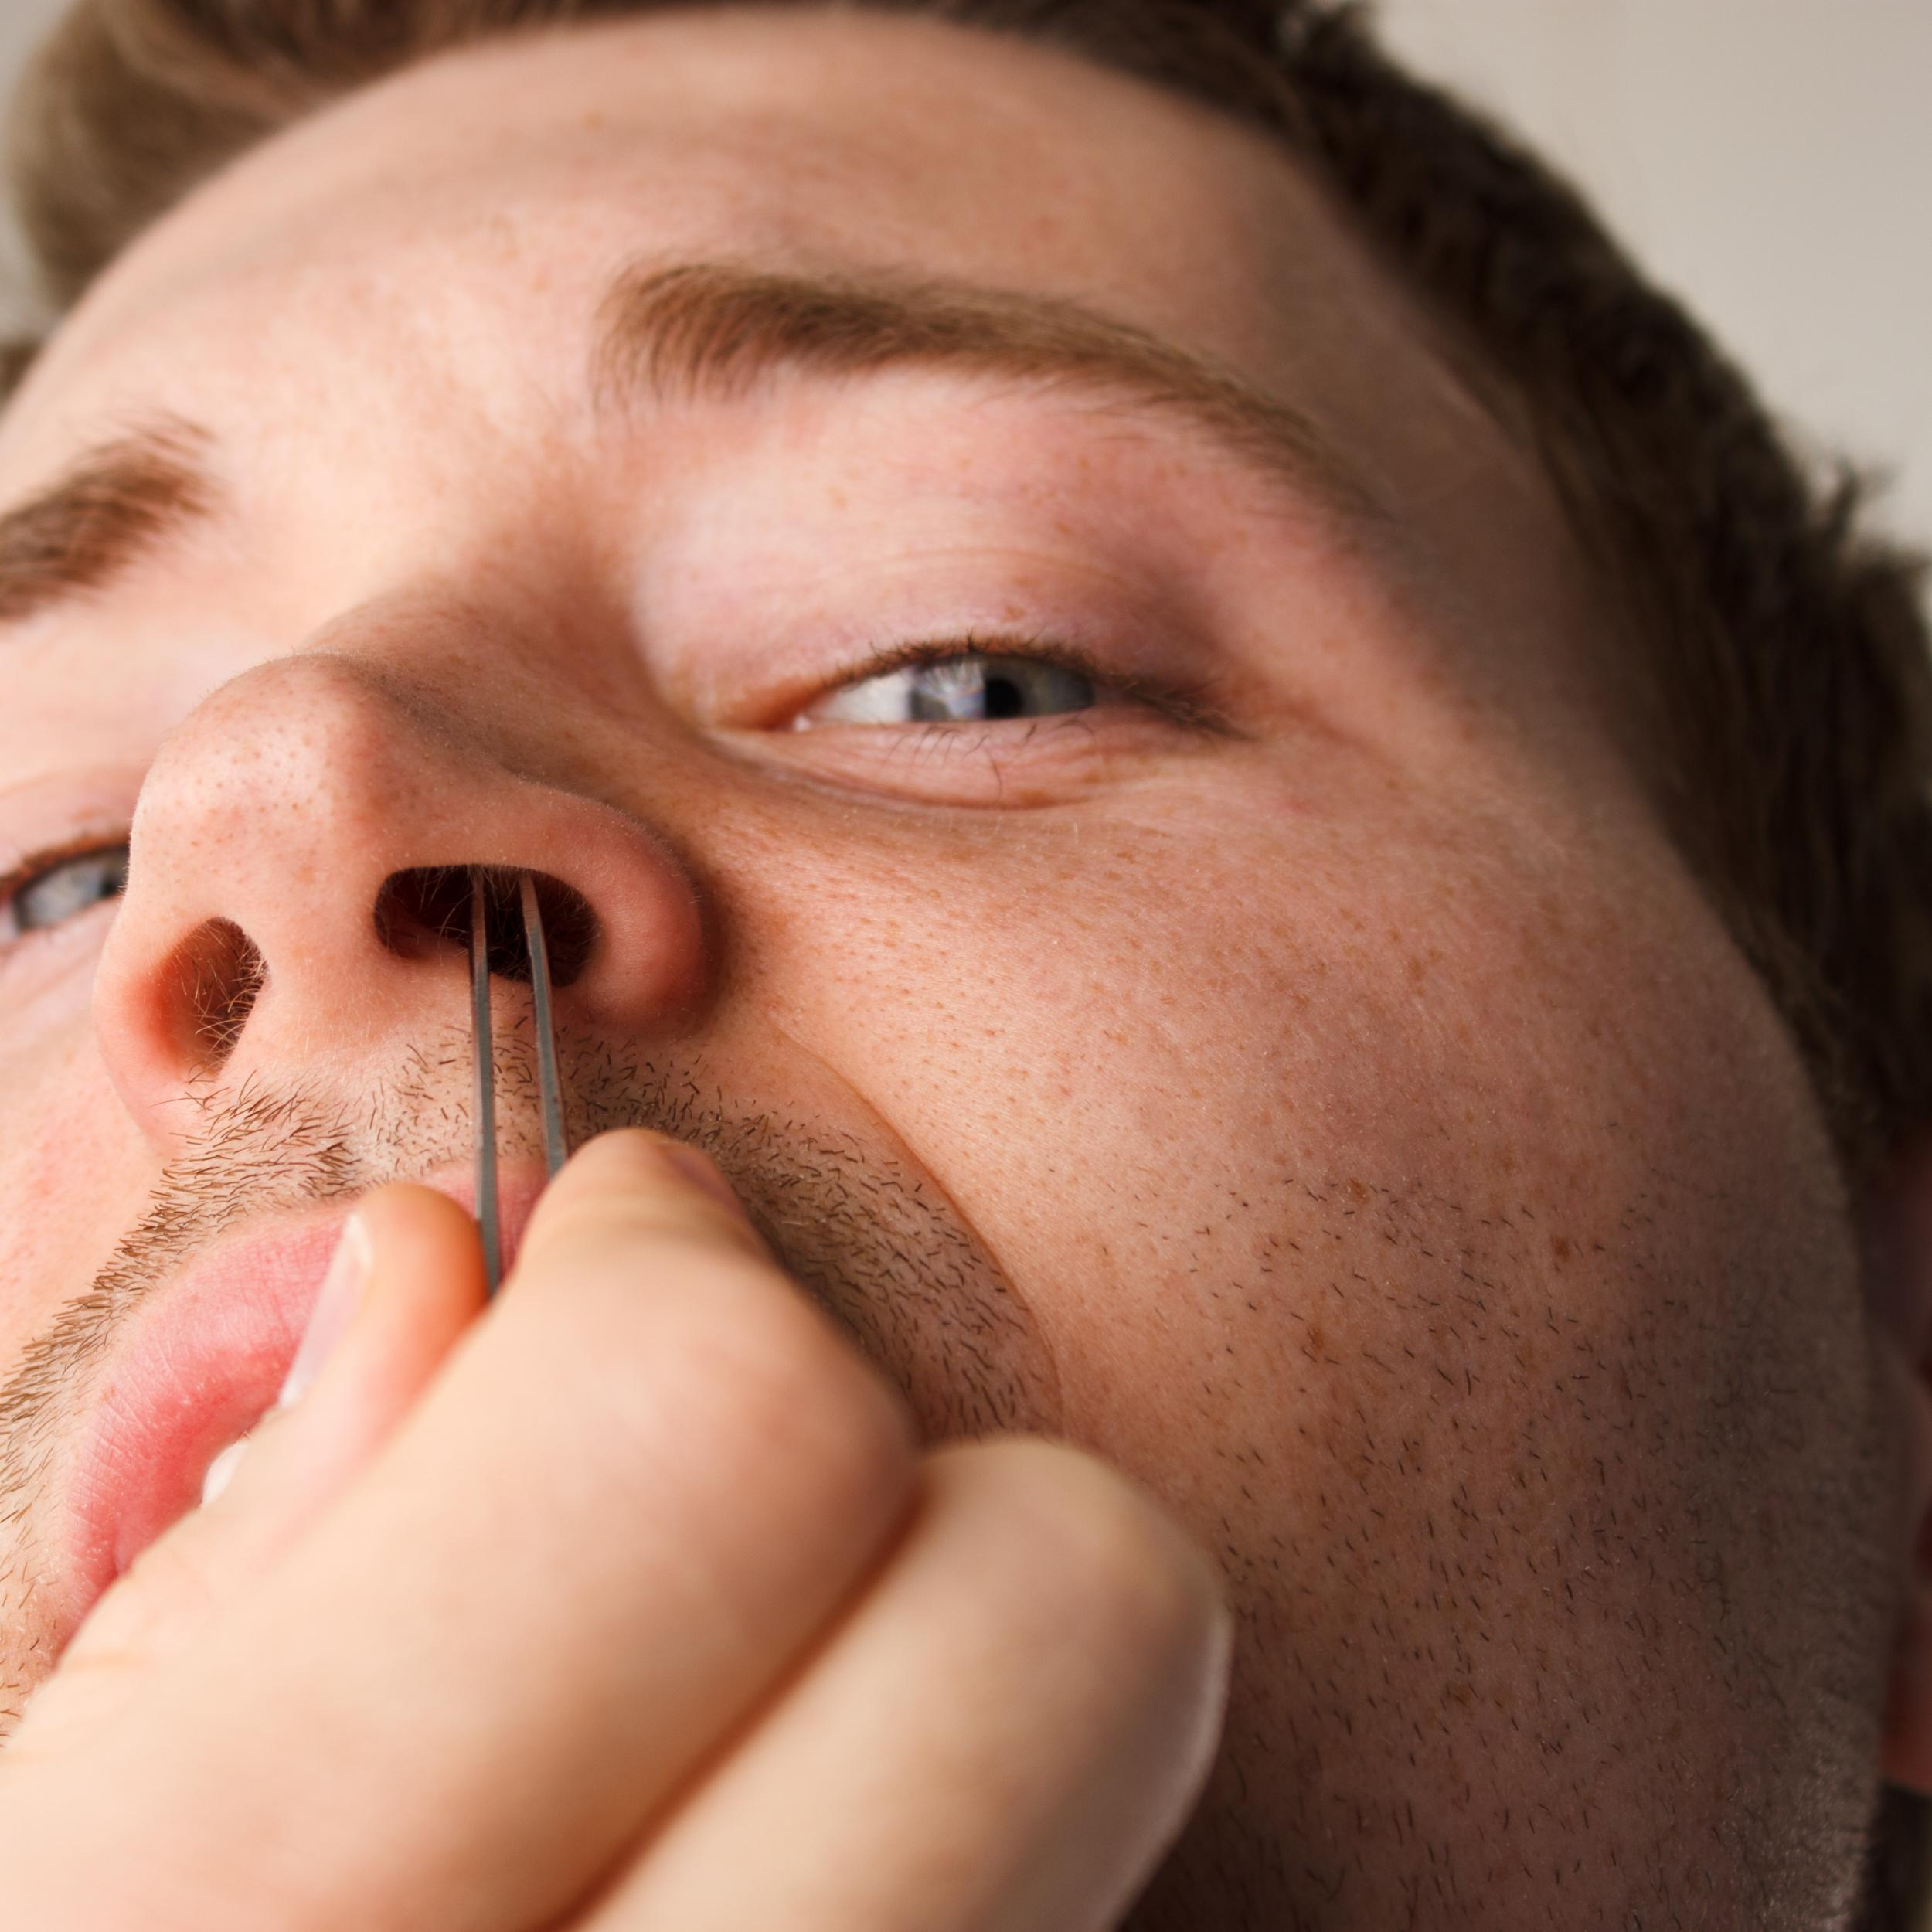 cancer inside tip of nose